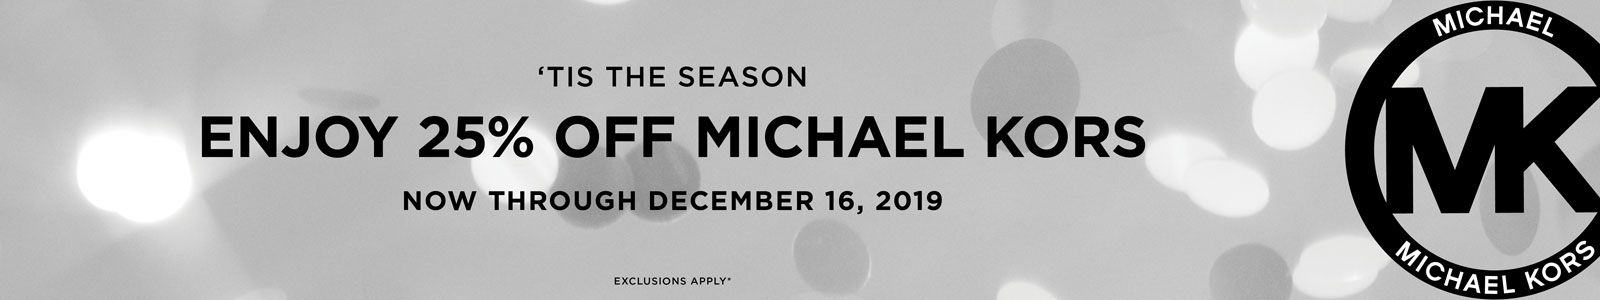 Tis The Season, Enjoy 25 Percent Off Michael Kors, now Through December 16, 2019